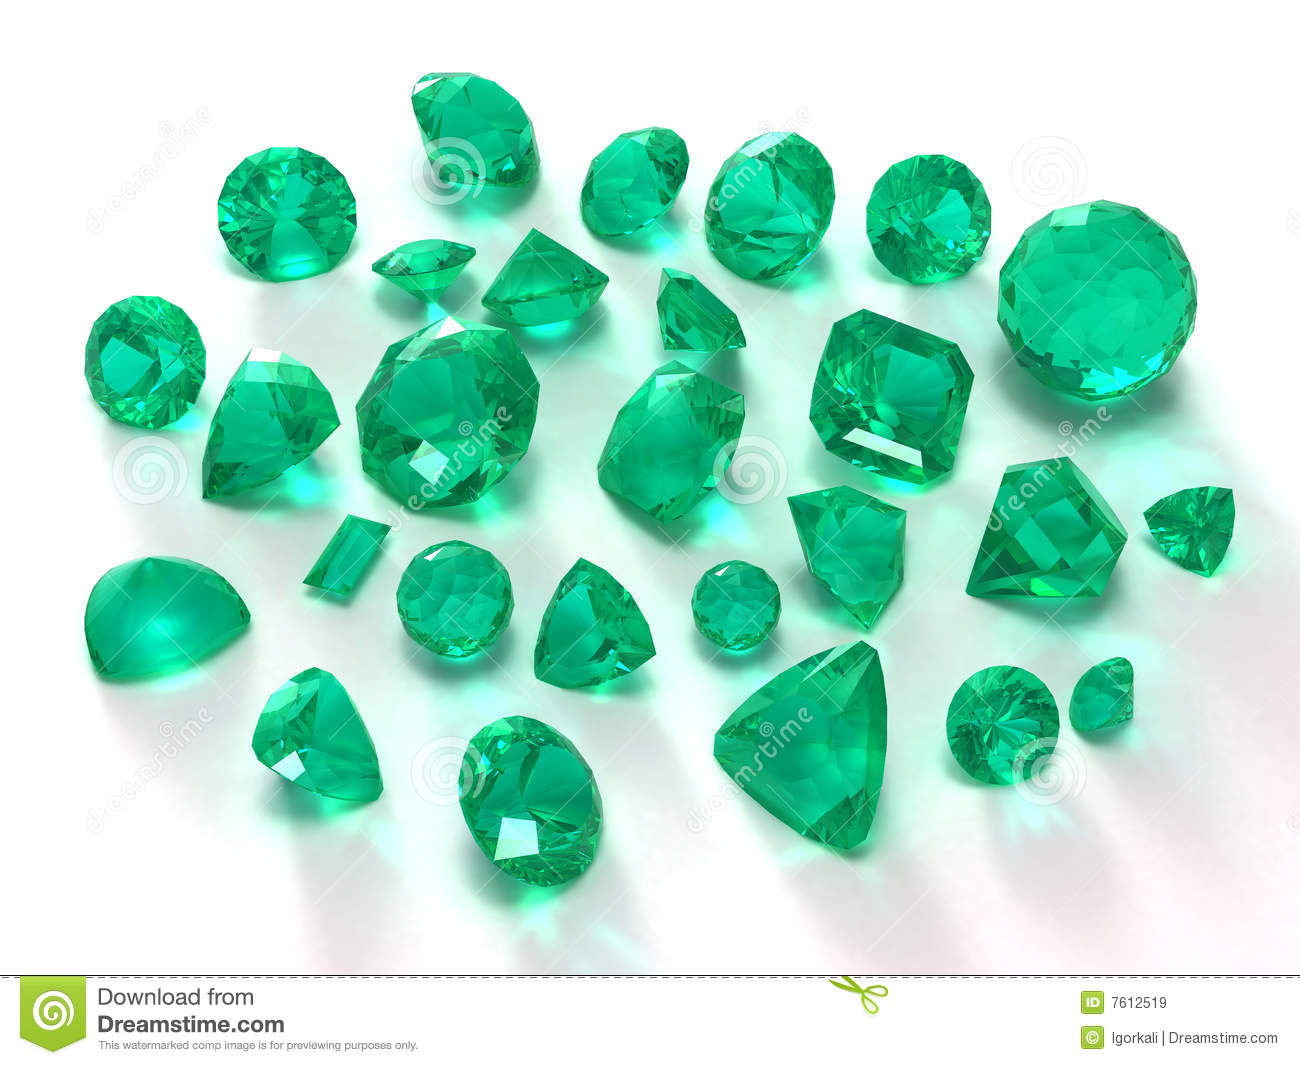 ct panjshir gemstone emerald afghanistan gems buy